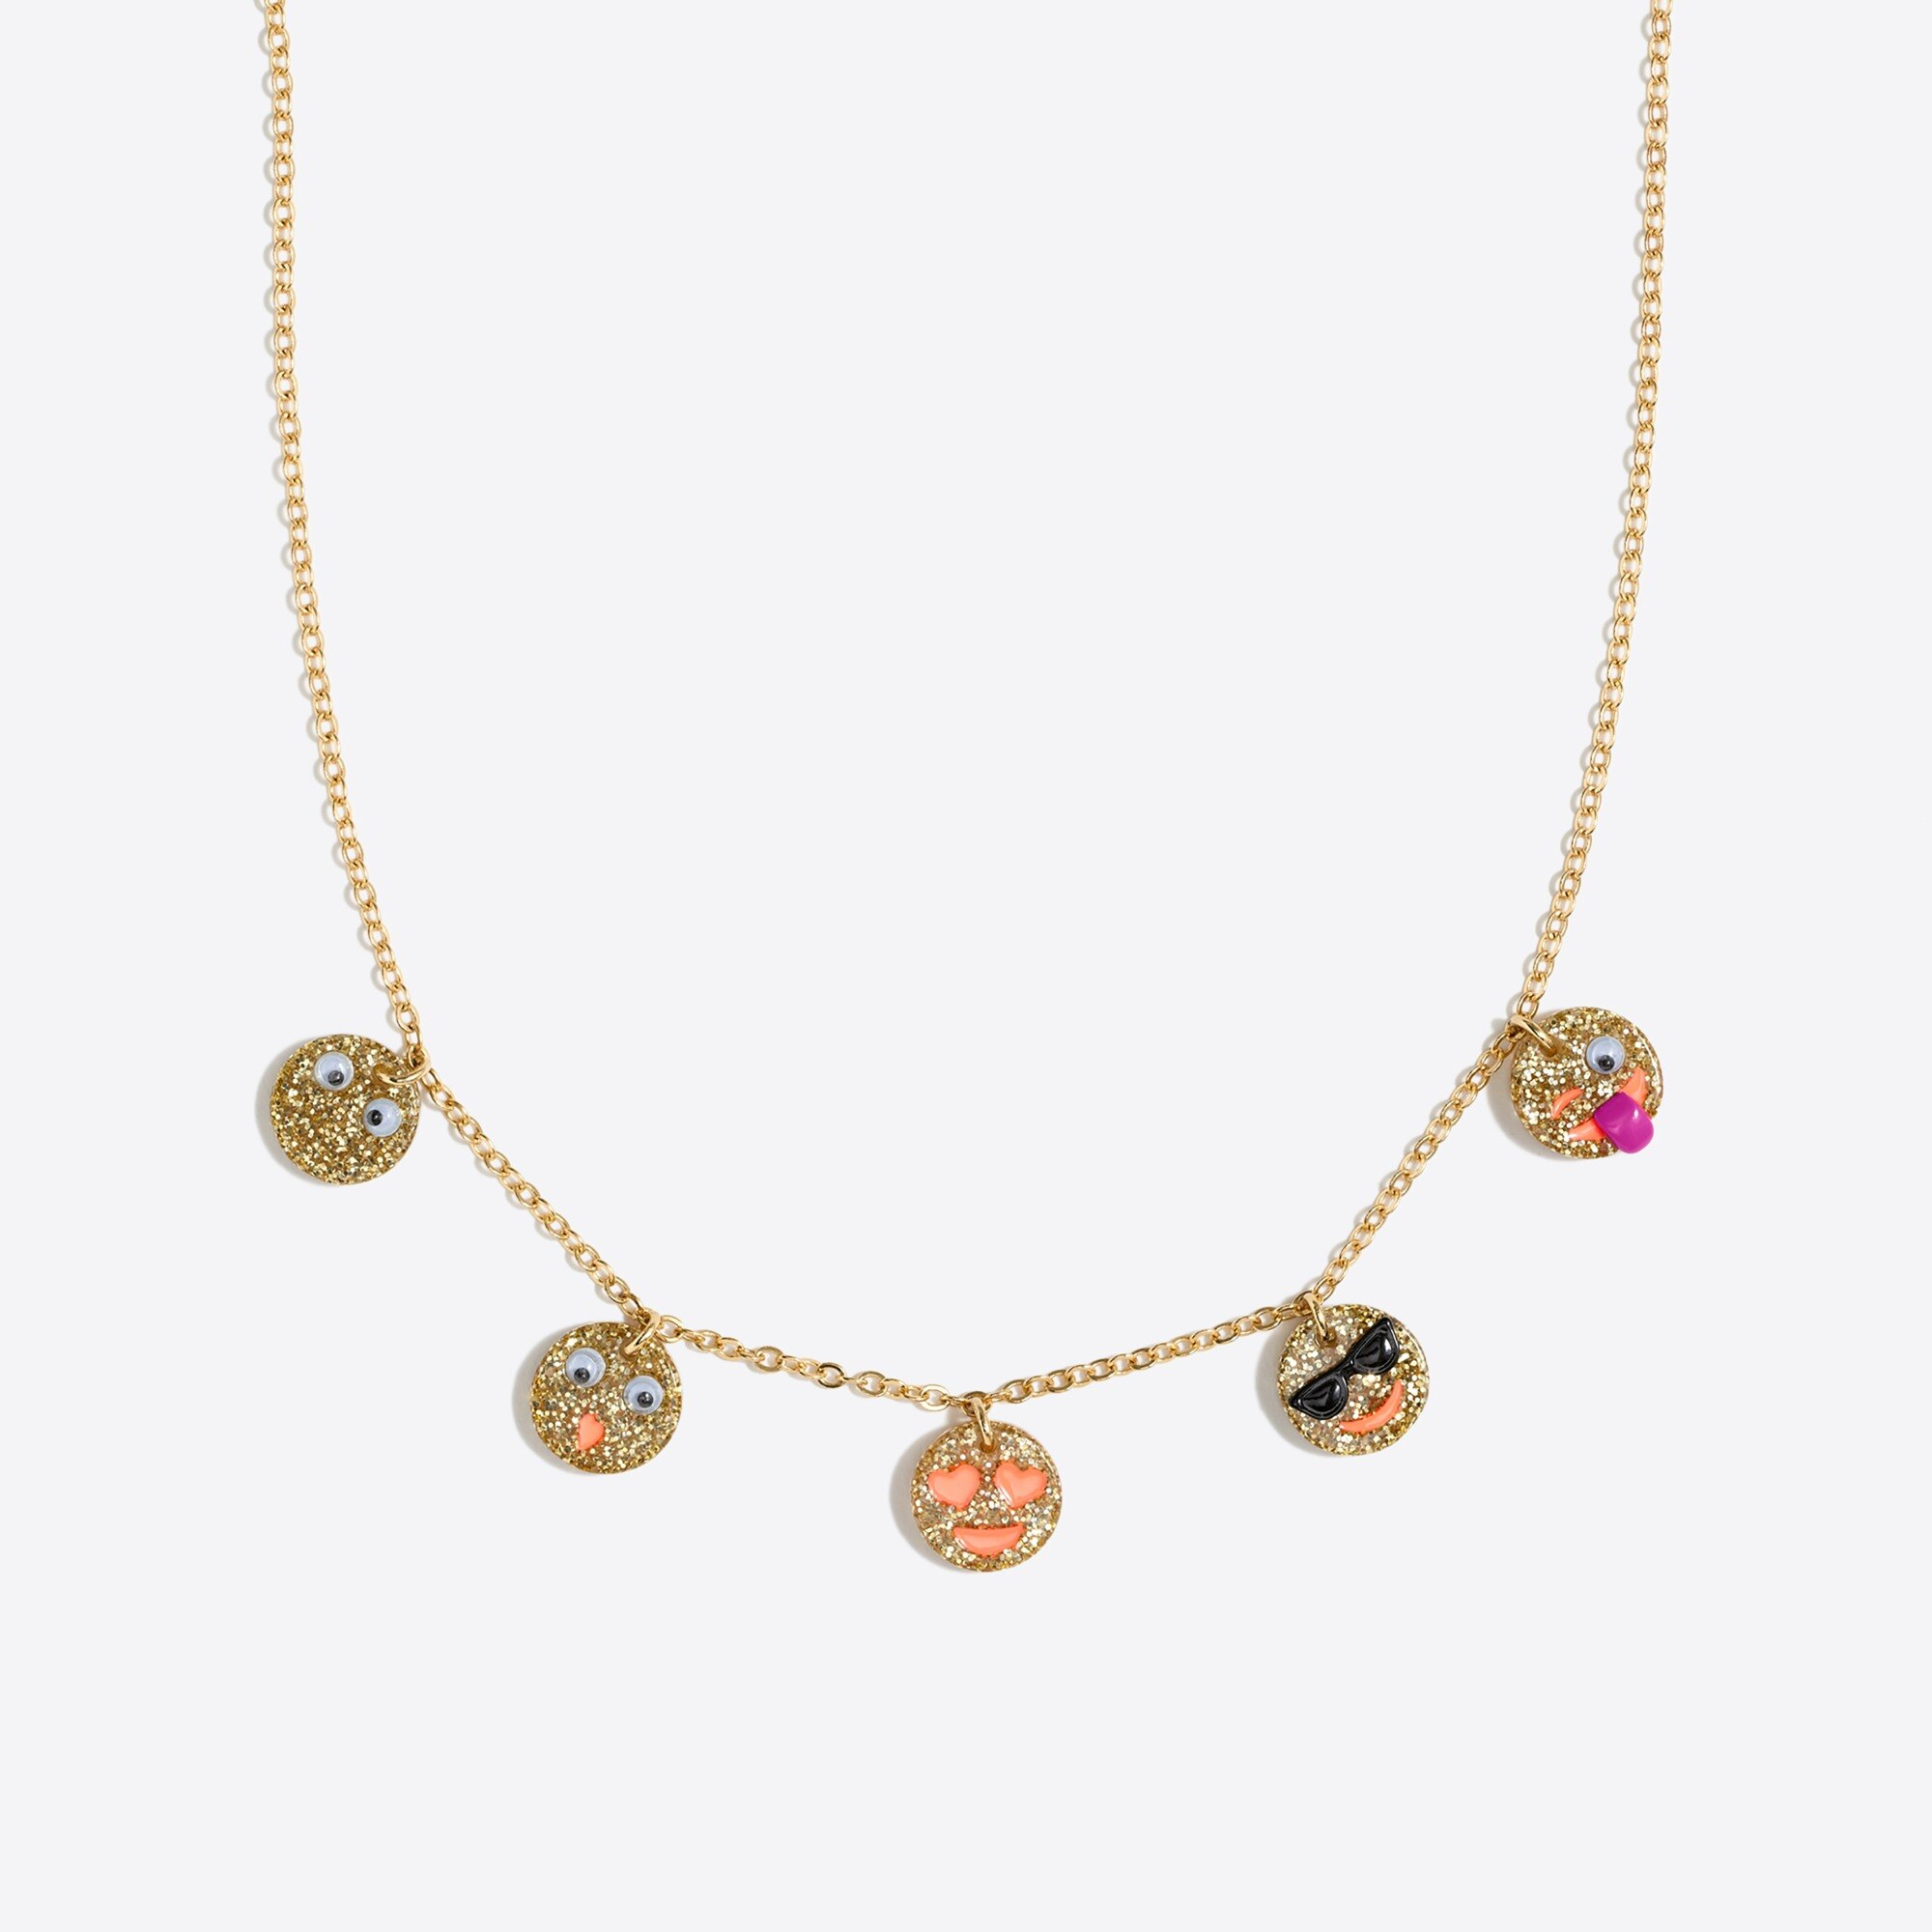 girls' emoji charm necklace : factorygirls jewelry